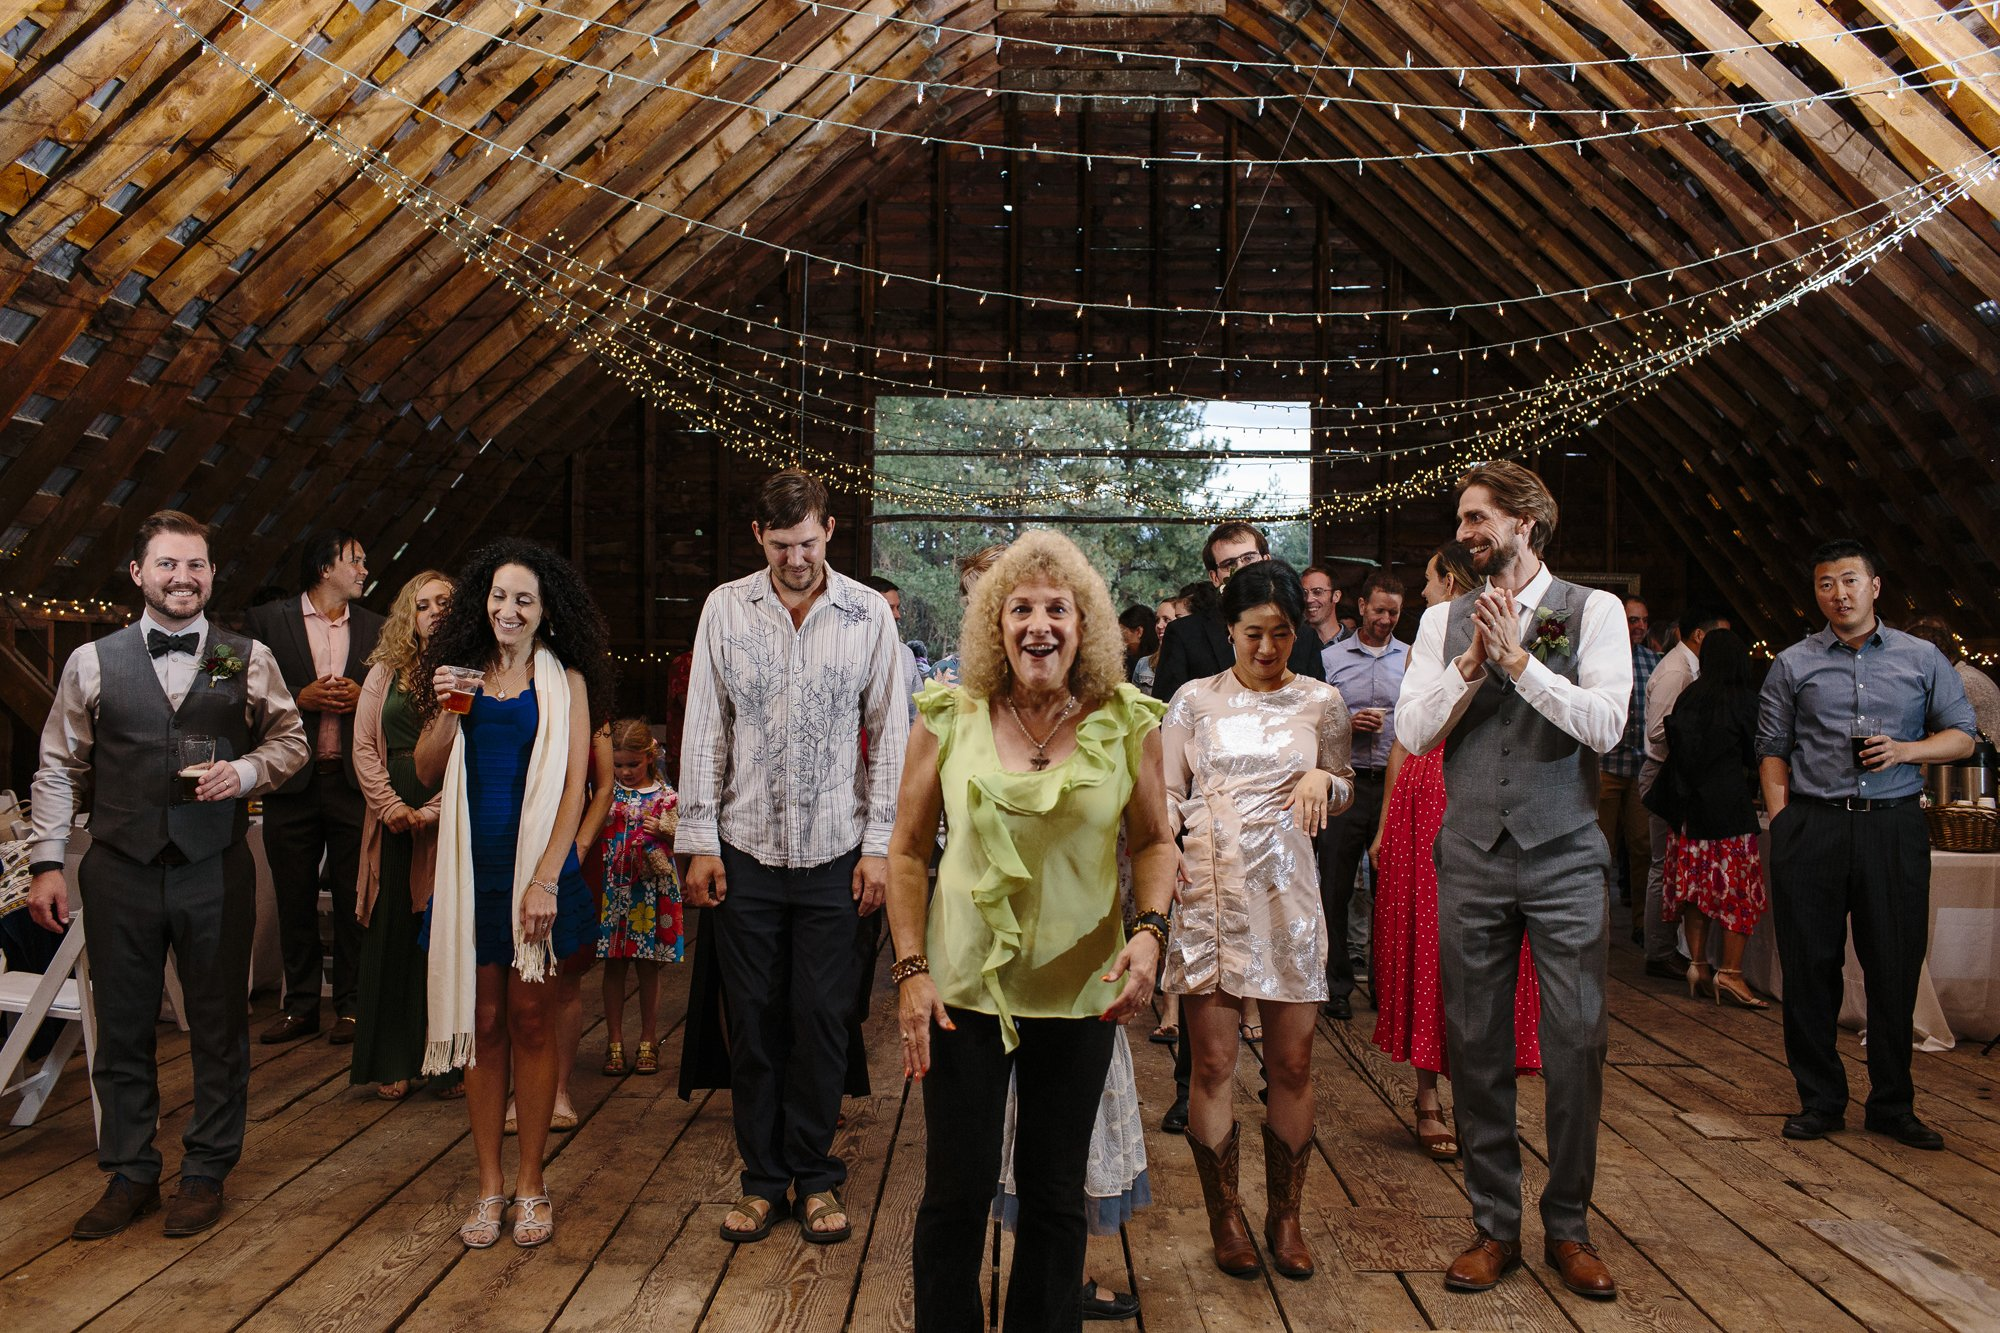 Line dancing lessons at a wedding // Mazama Ranch House